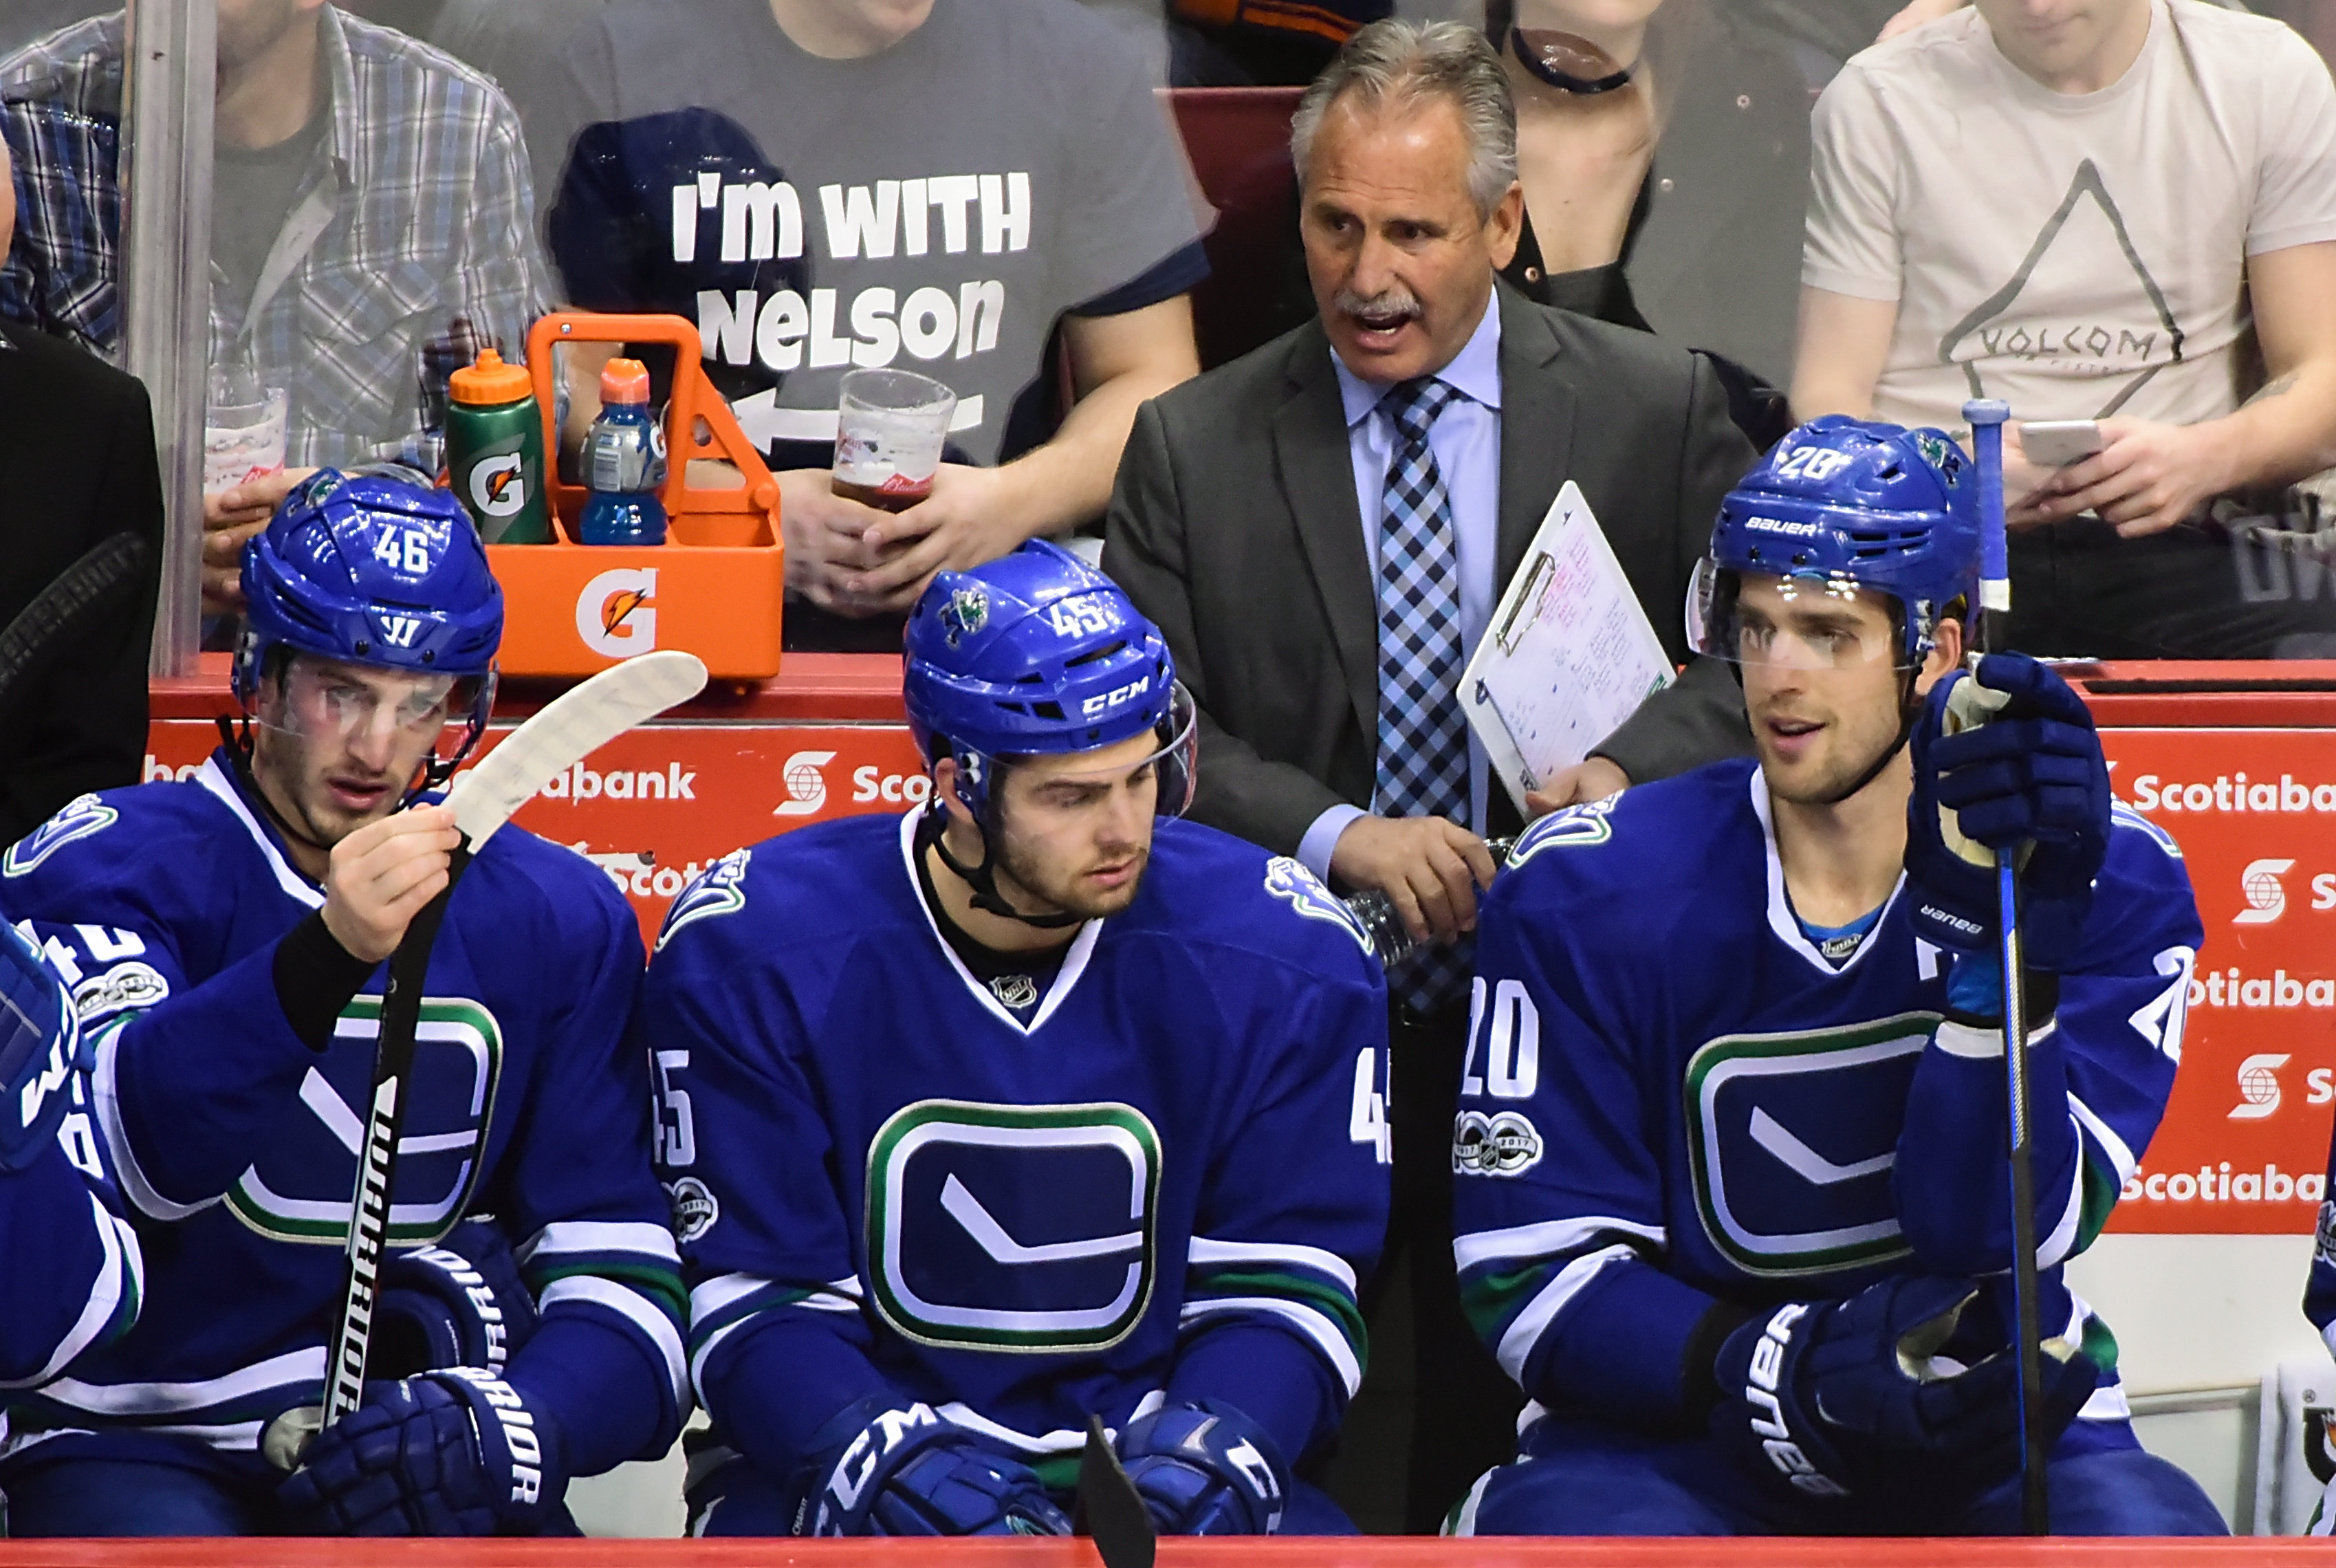 10002299-nhl-edmonton-oilers-at-vancouver-canucks